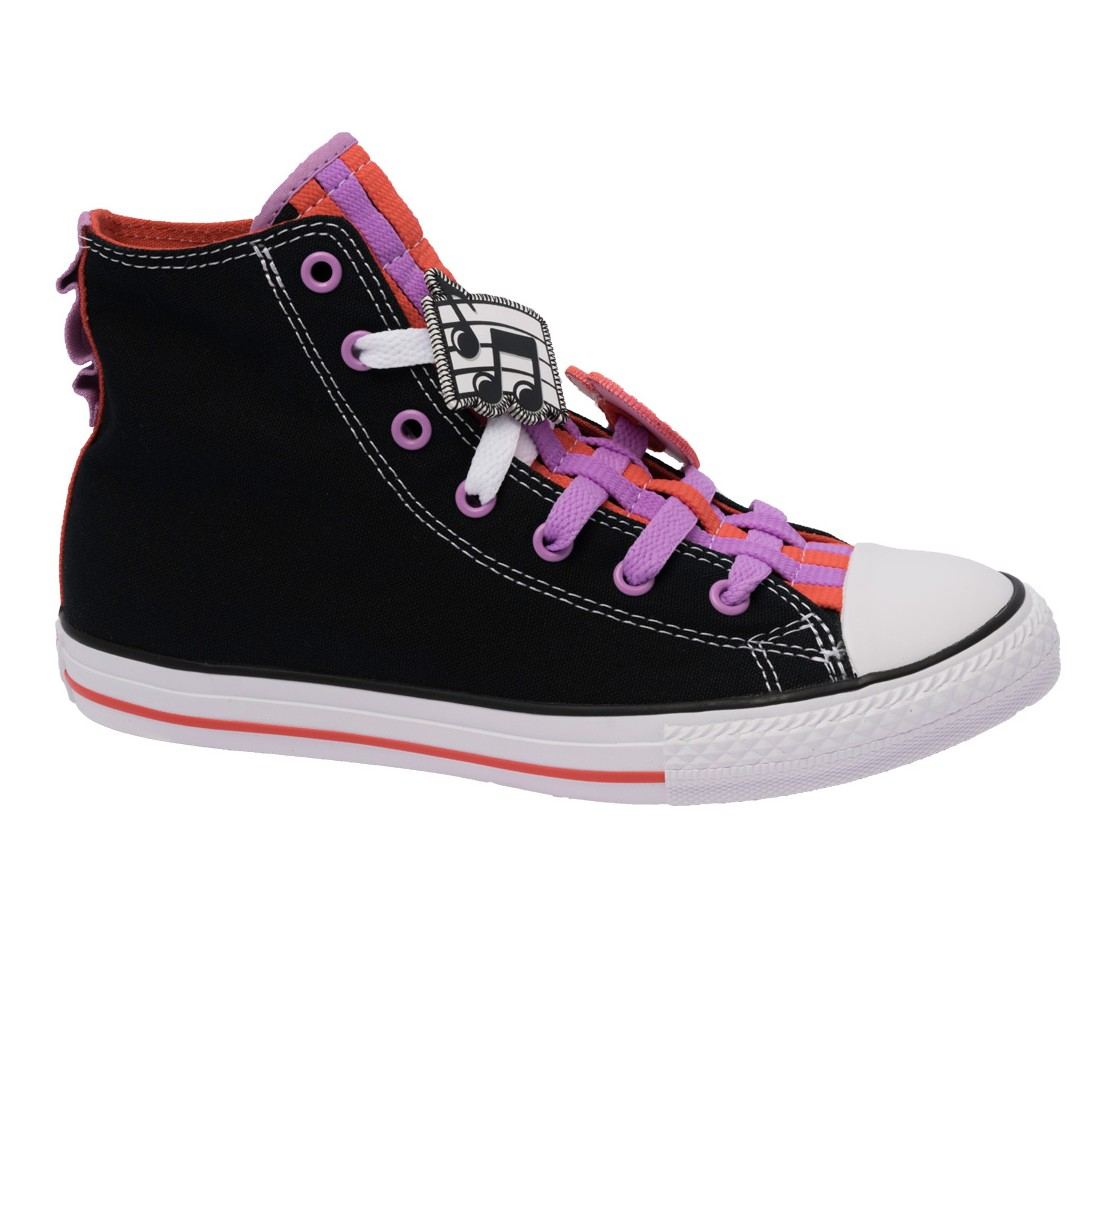 Converse Παιδικό Παπούτσι Μόδας Chuck Taylor All Star Loophole 656046C